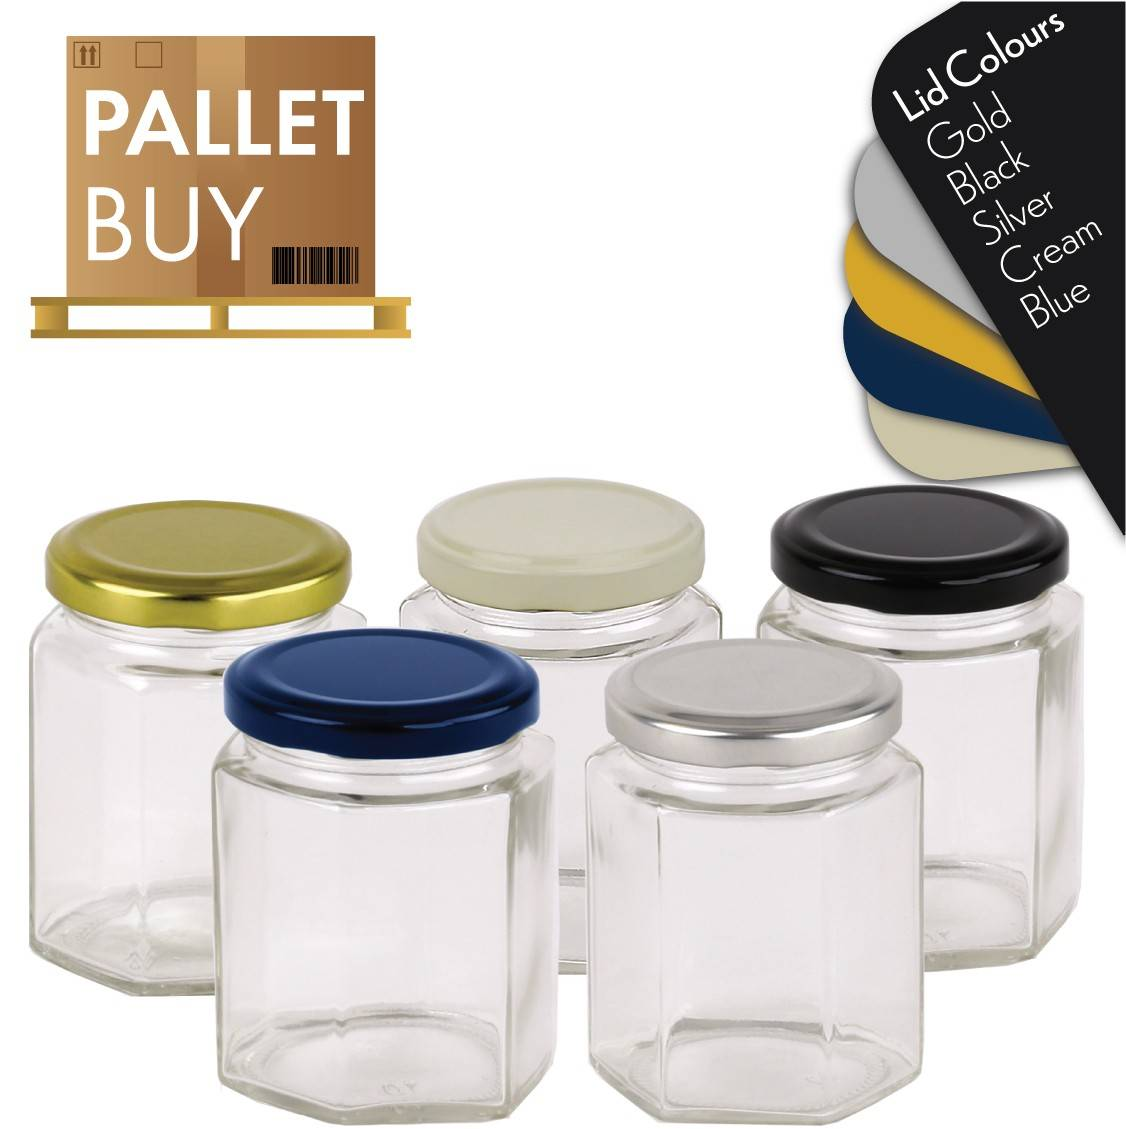 Pallet of 2313 Hexagonal Jars 280ml / 400gm size with Blue, Black, Gold, Cream or Silver Lid. GST Incl.